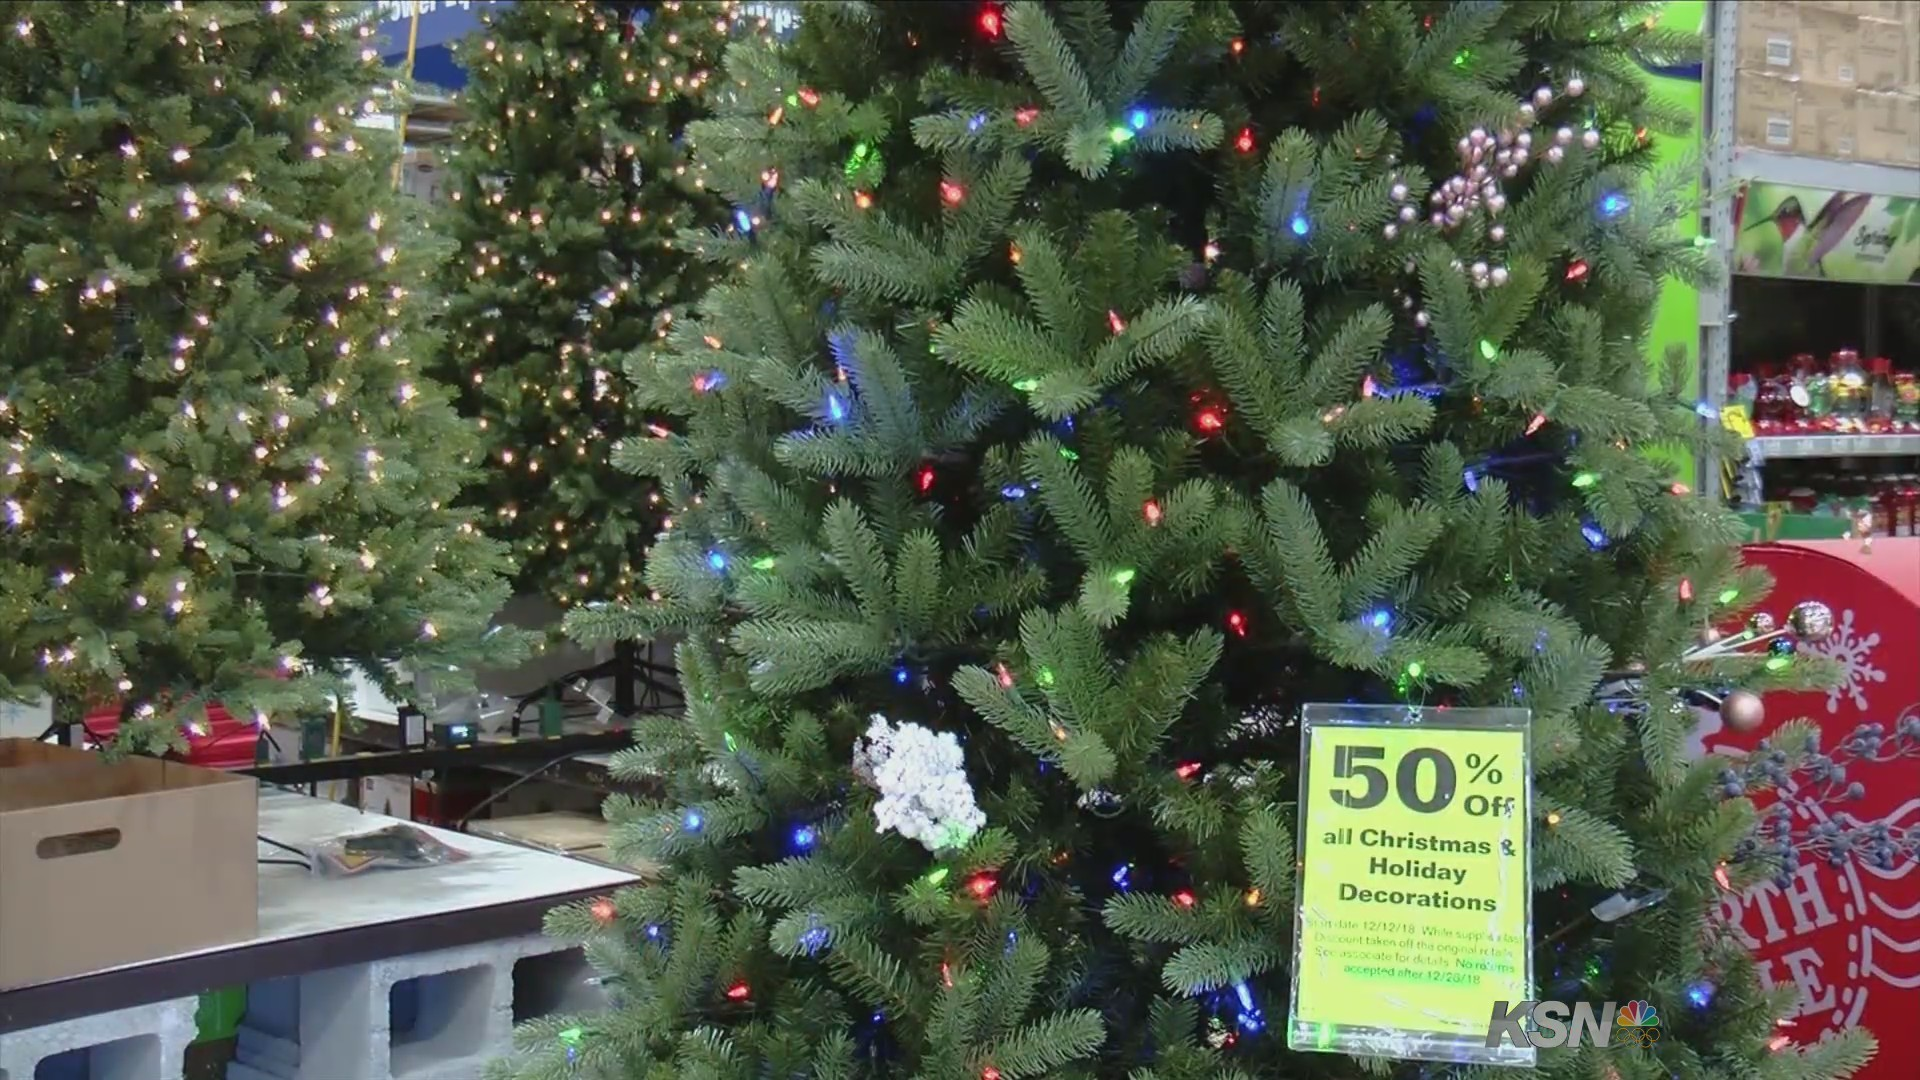 Lowes Christmas Light Recyling 2021 Lowe S Will Take Your Old Christmas Lights